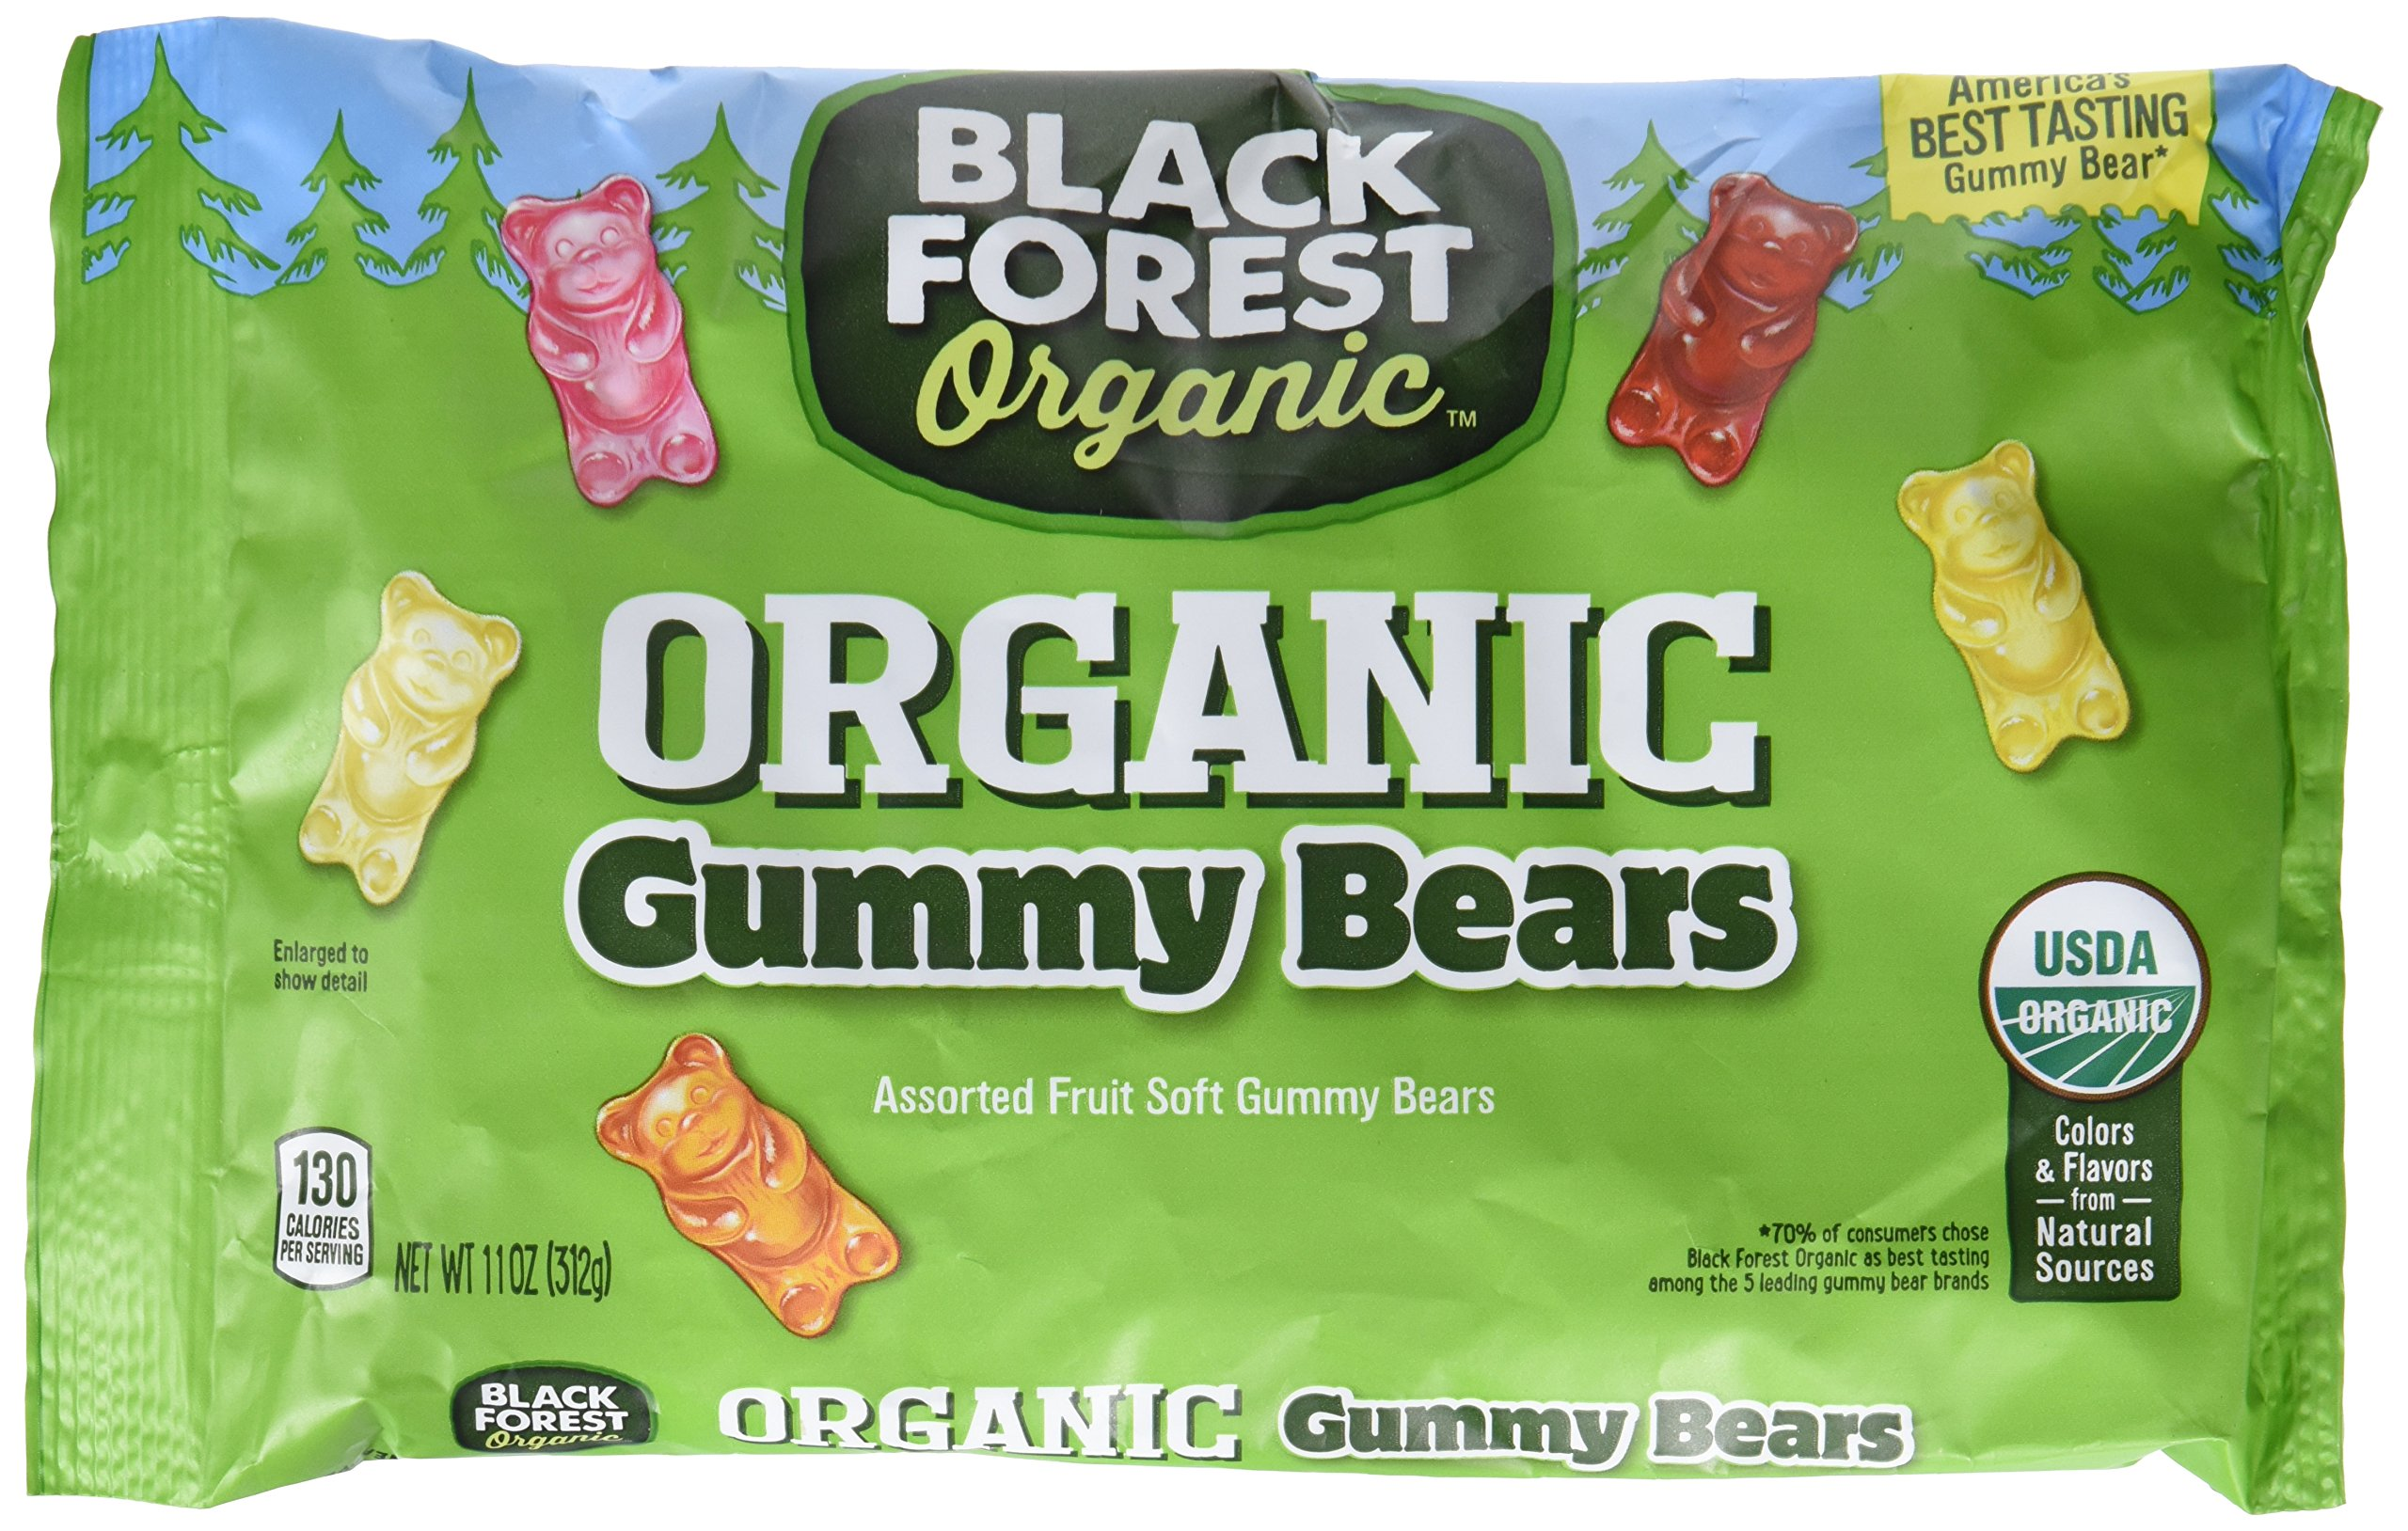 Haribo gummy bears are just one of many products that thomas - Black Forest Organic Gummy Bears 11 Ounce